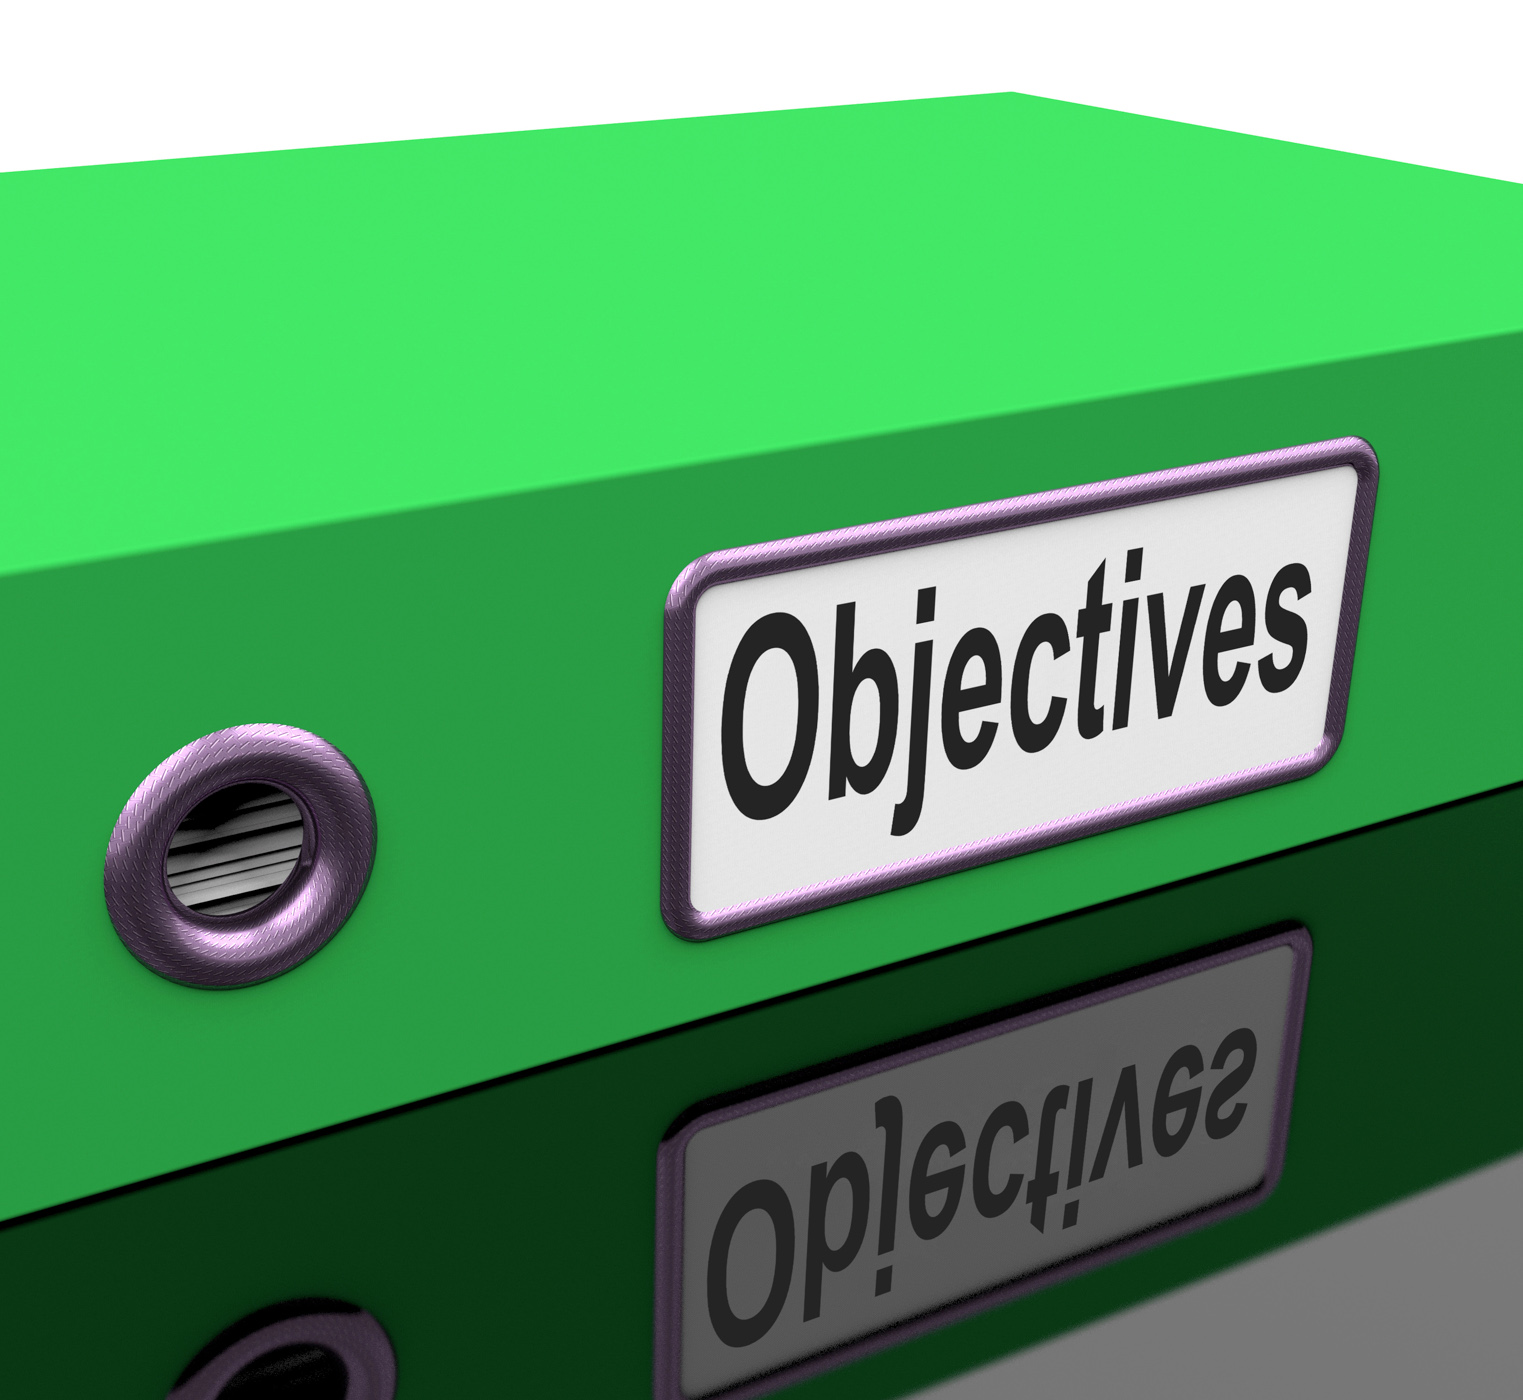 File Objectives Means Goals Mission And Plan, Administration, Goal, Target, Plan, HQ Photo